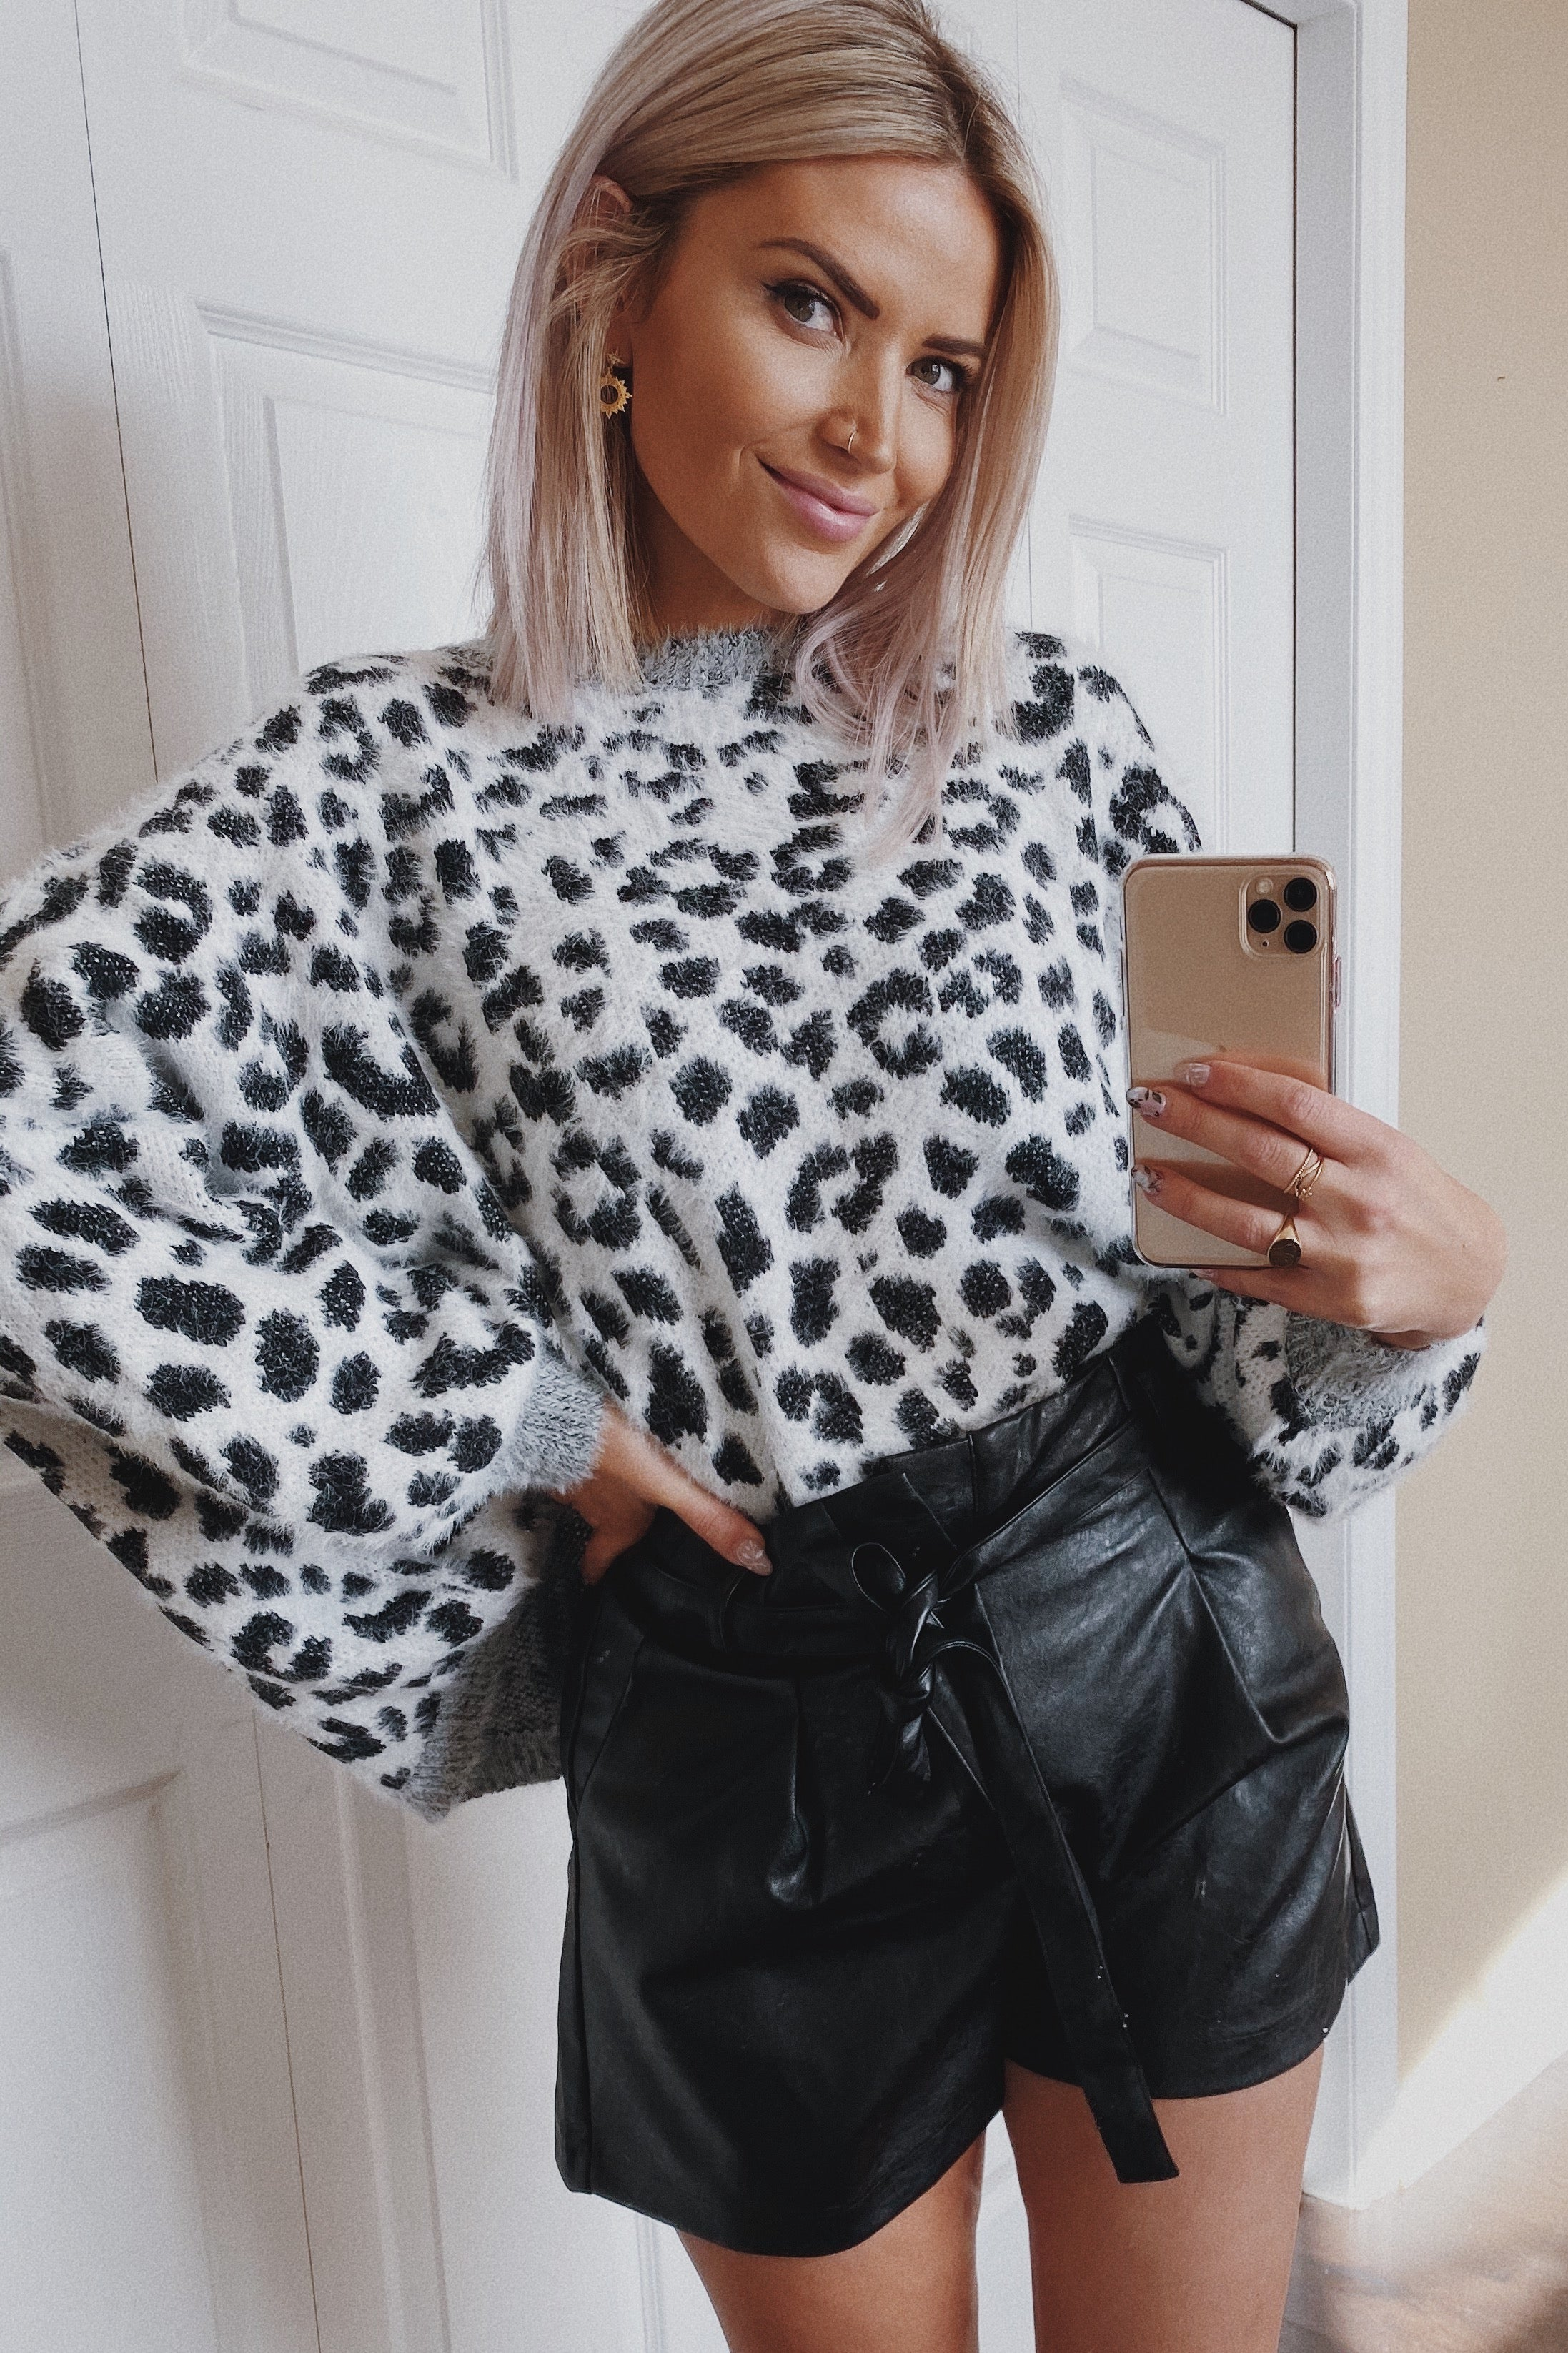 The One Where She Wore a Fuzzy Leopard Sweater